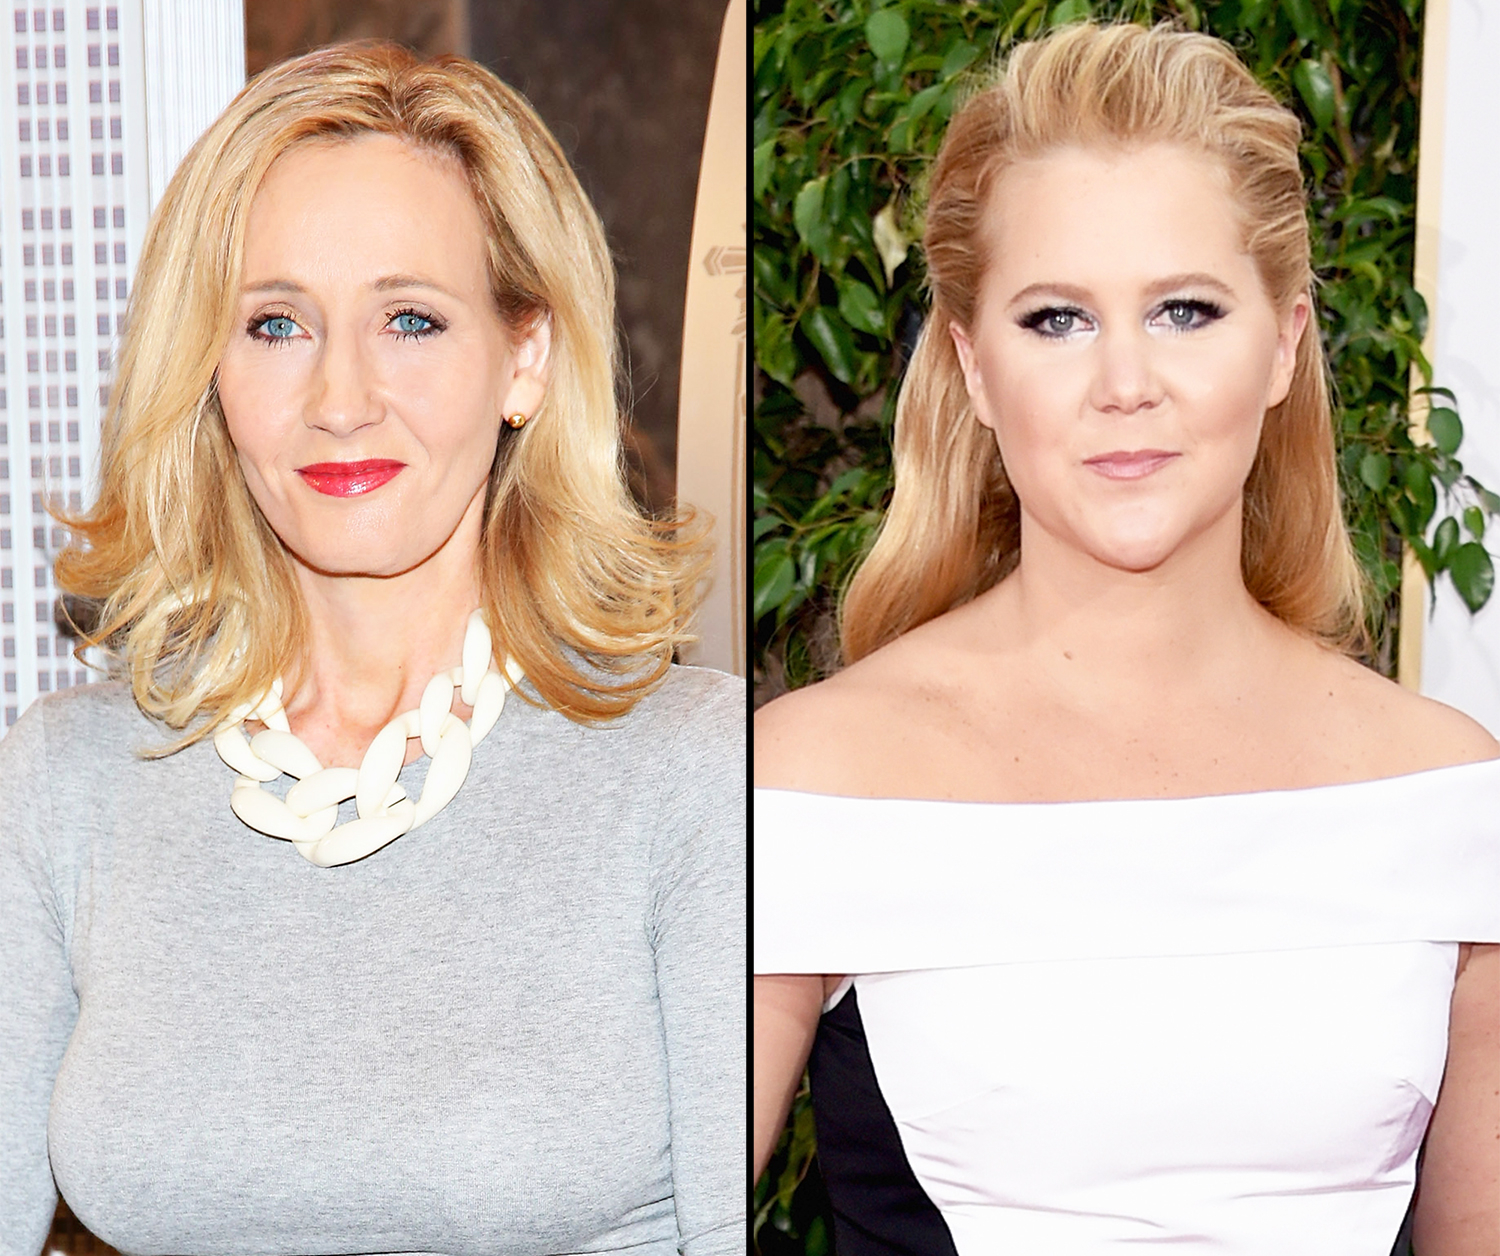 J.K. Rowling and Amy Schumer